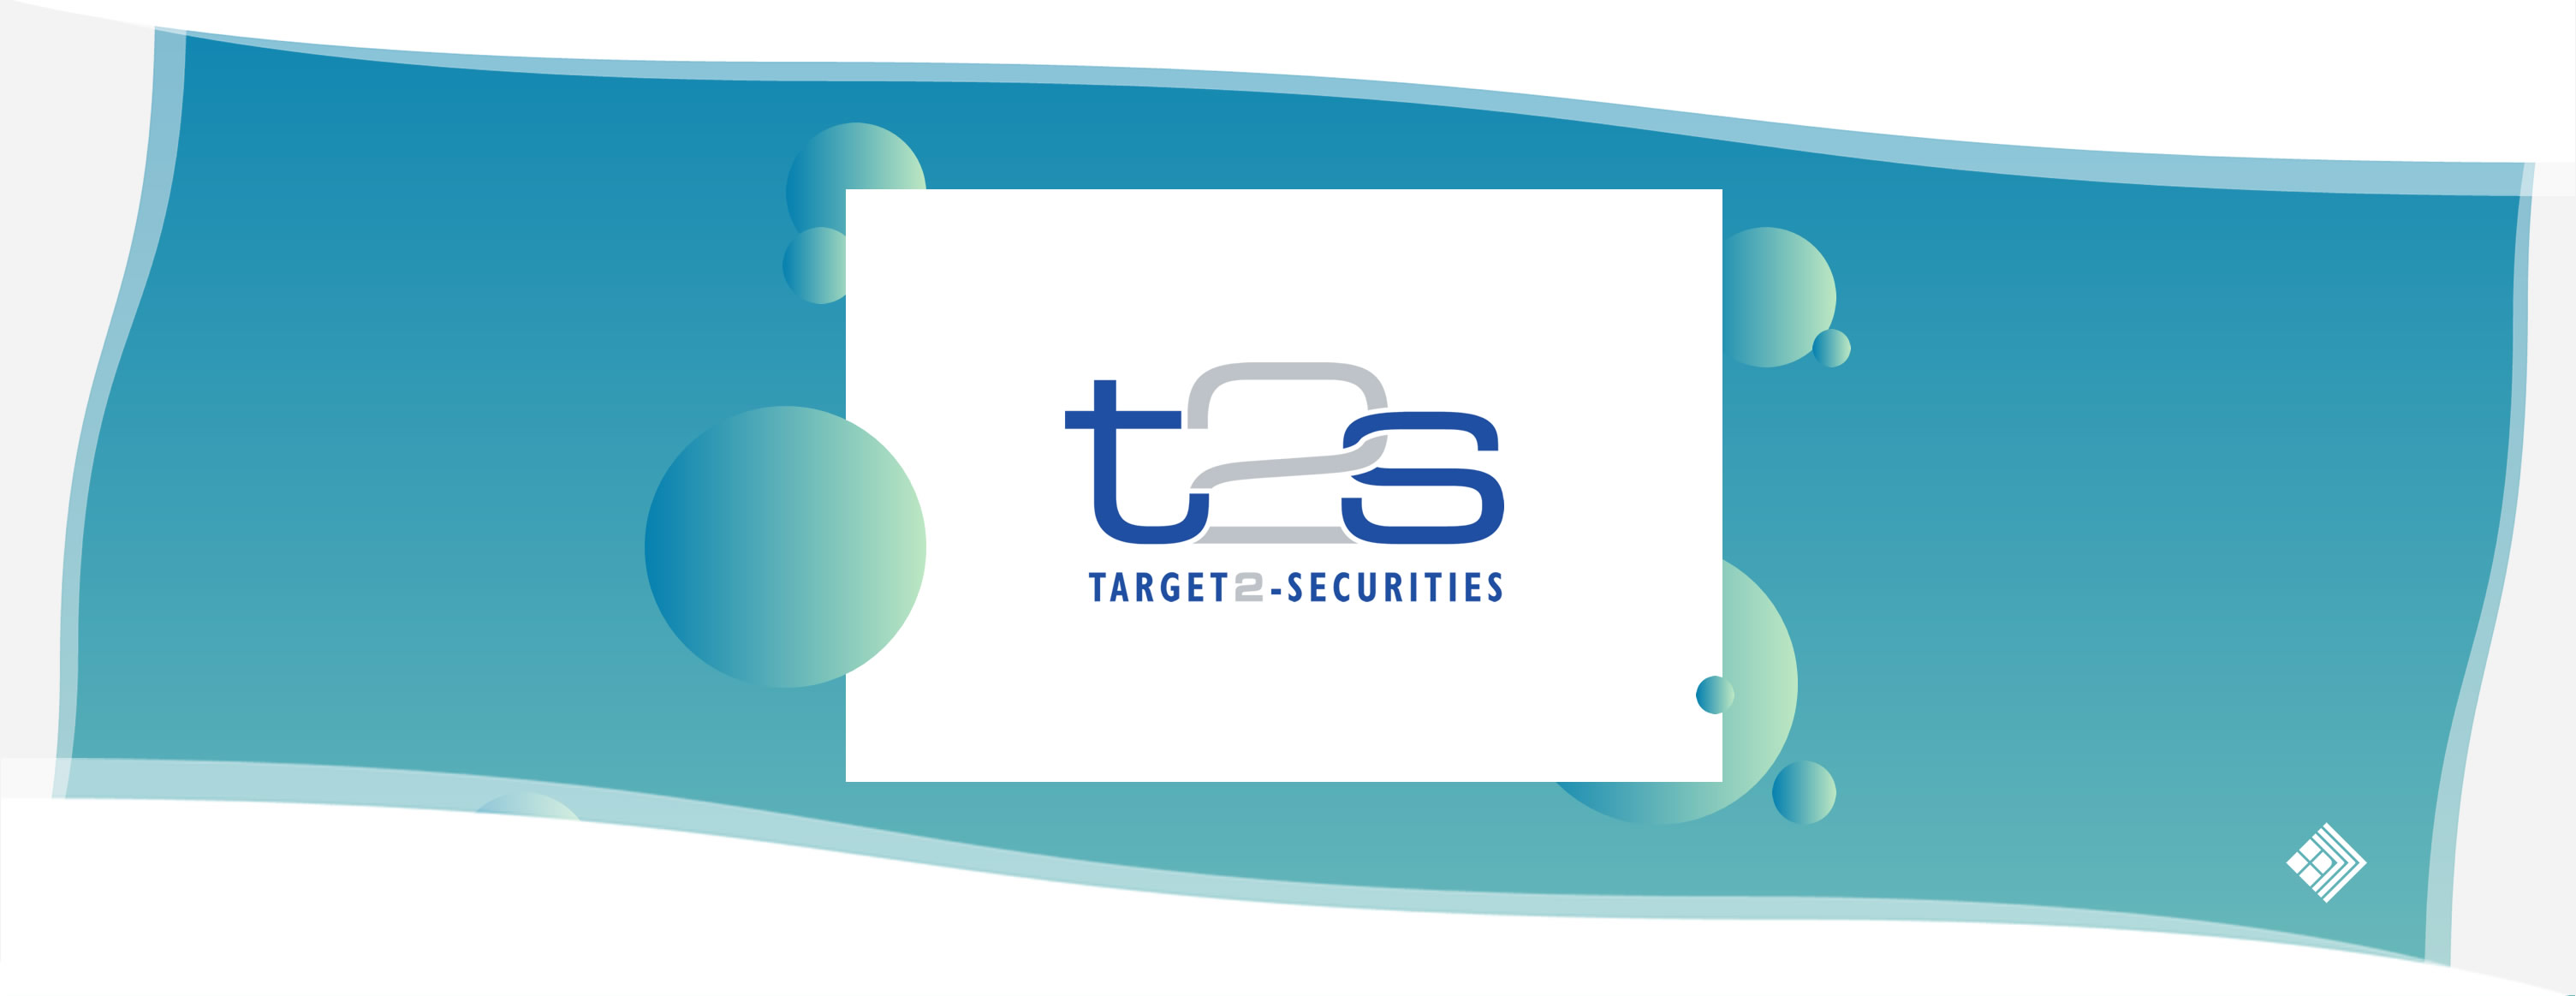 T2S - Target 2 Securities Consolidation CADIT